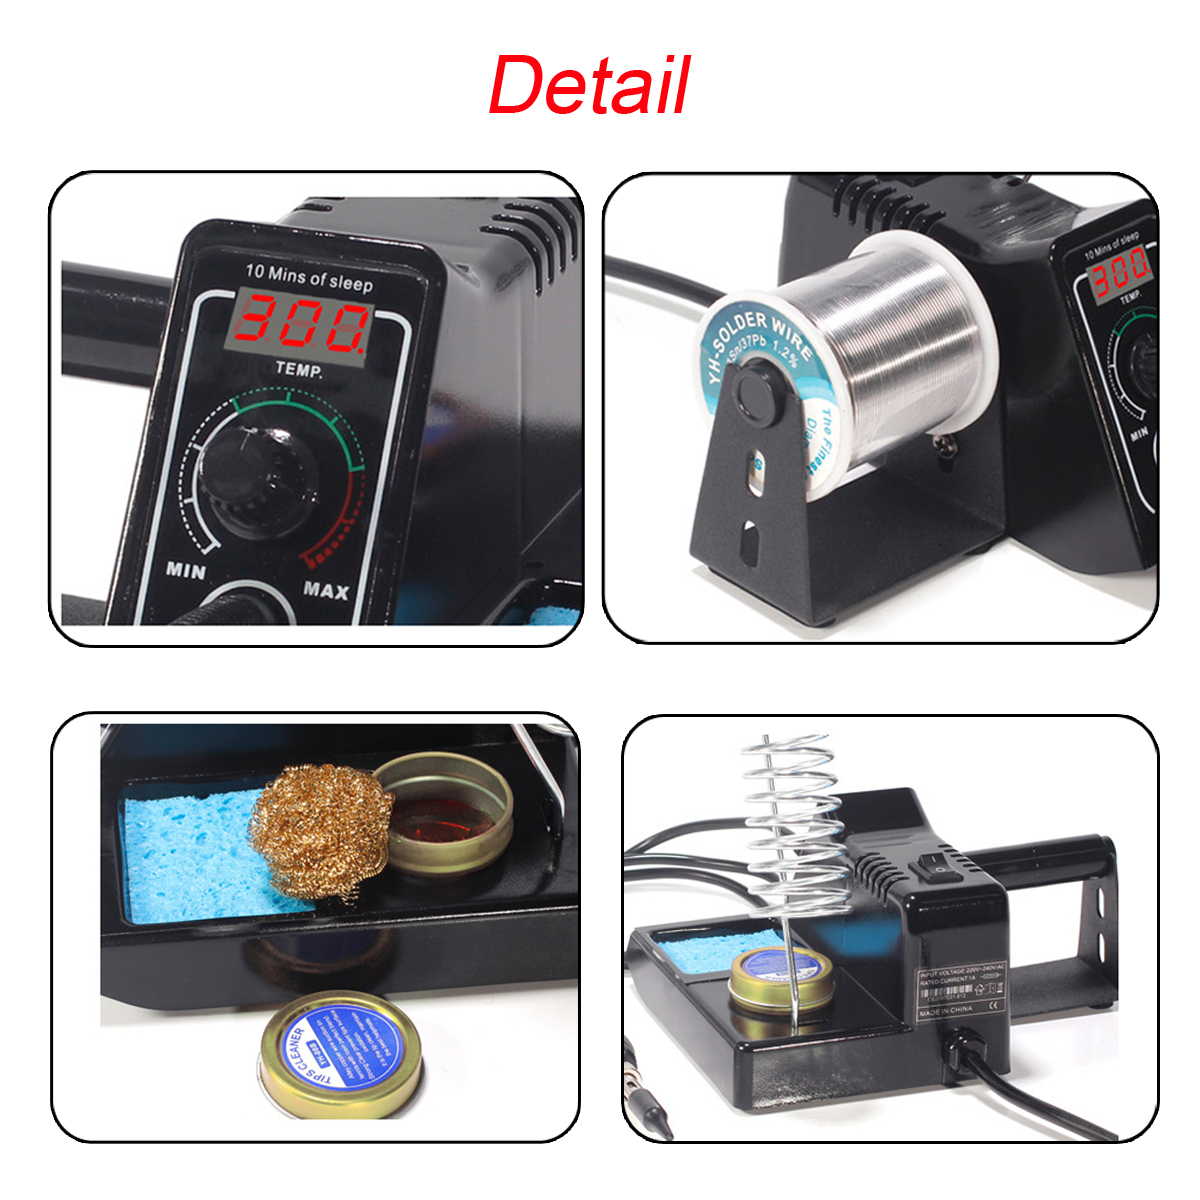 60W WEP Solder Iron Rework Station Variable Temperature LED Display + Gun Stand